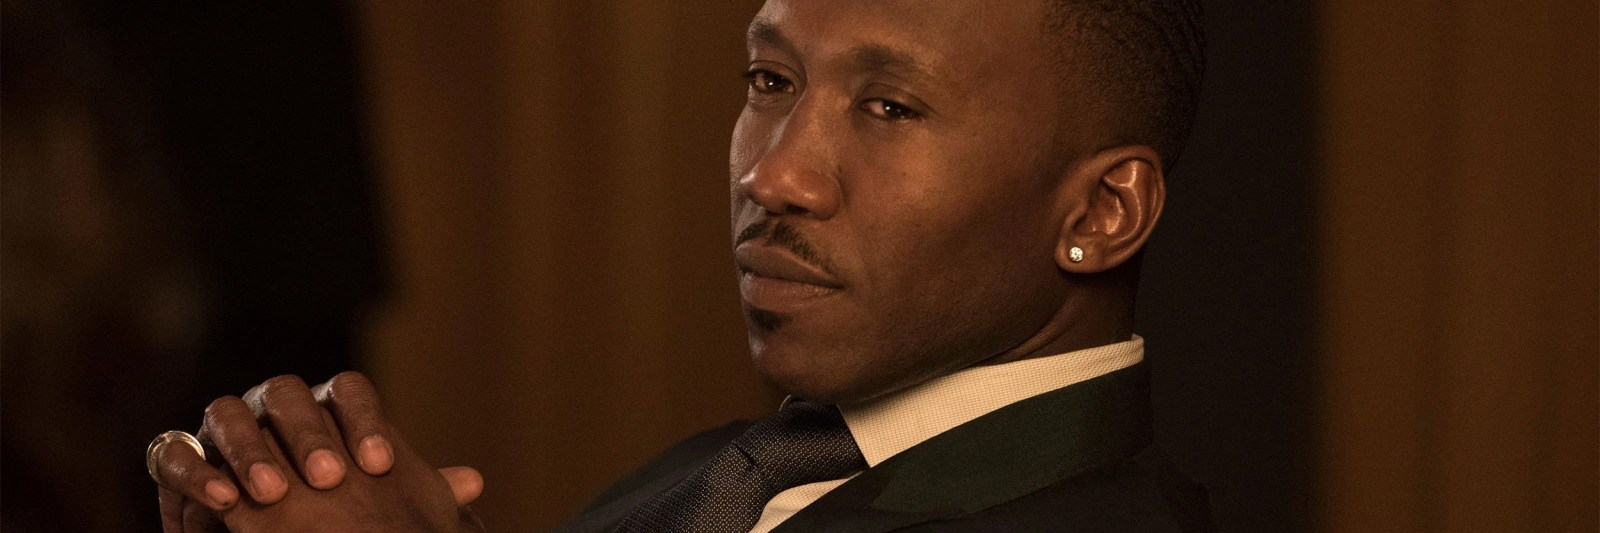 mahershala ali as cottonmouth in Luke Cage